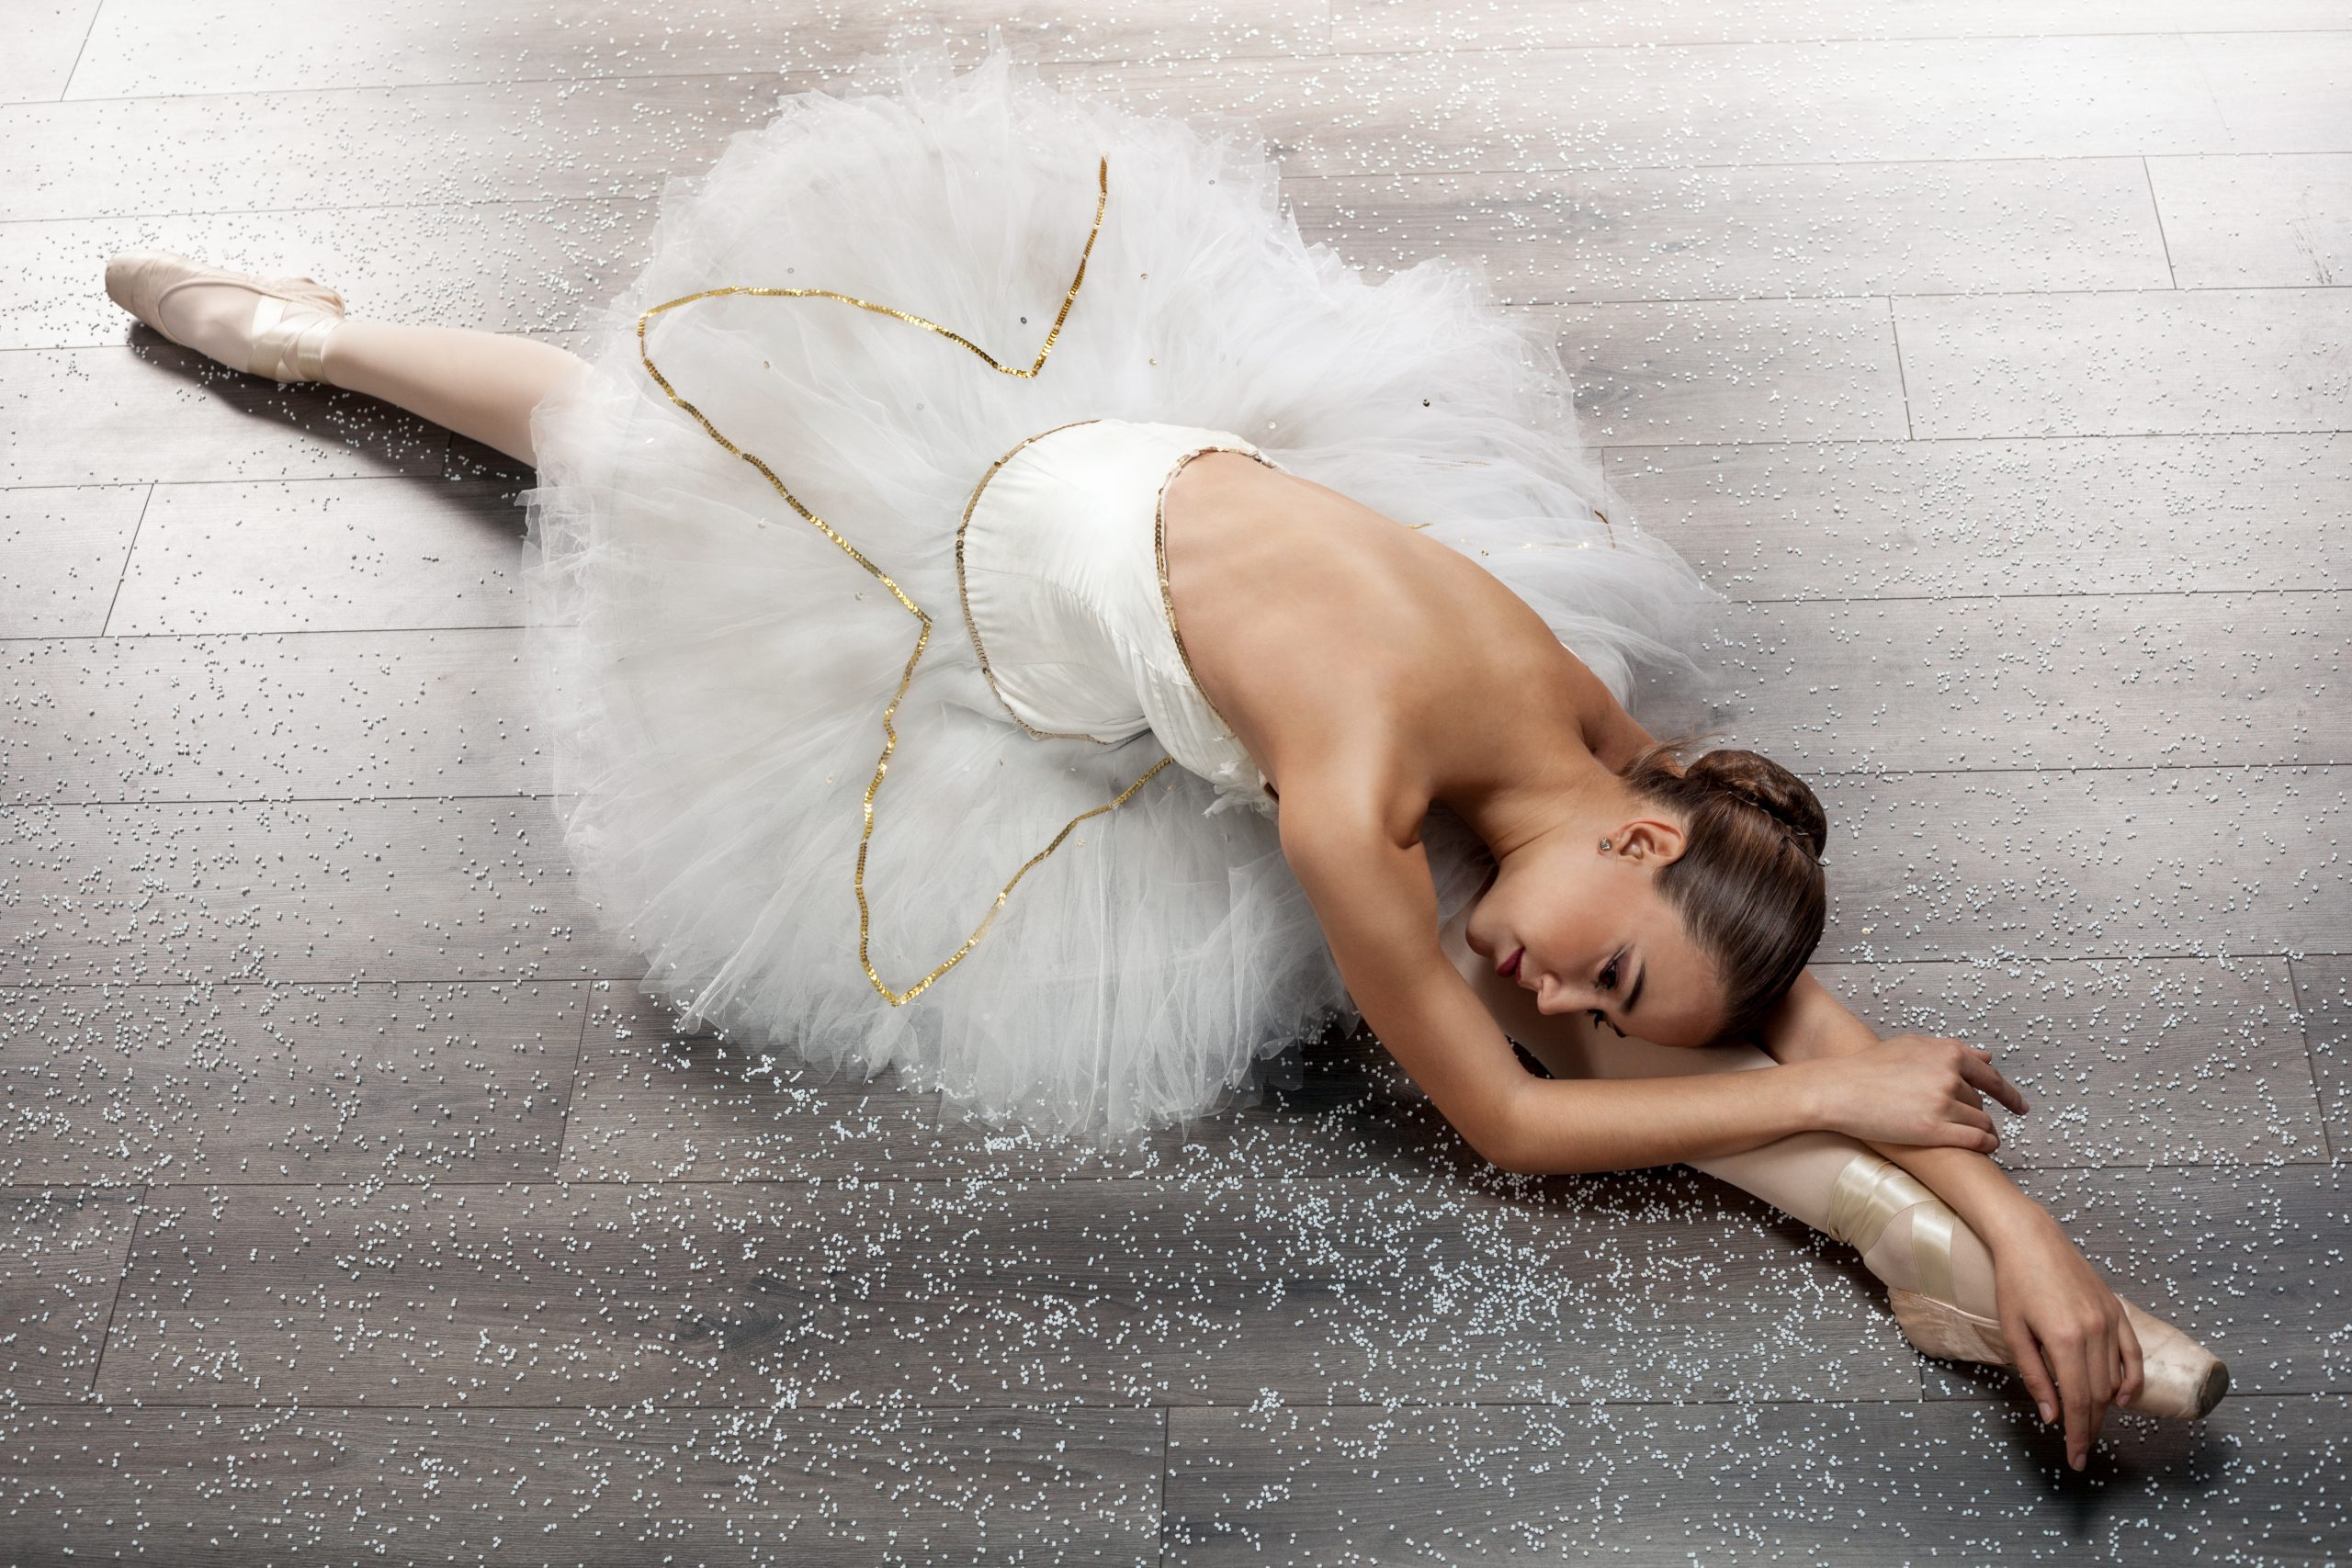 Ballerina is wearing a white tutu and pointe shoes